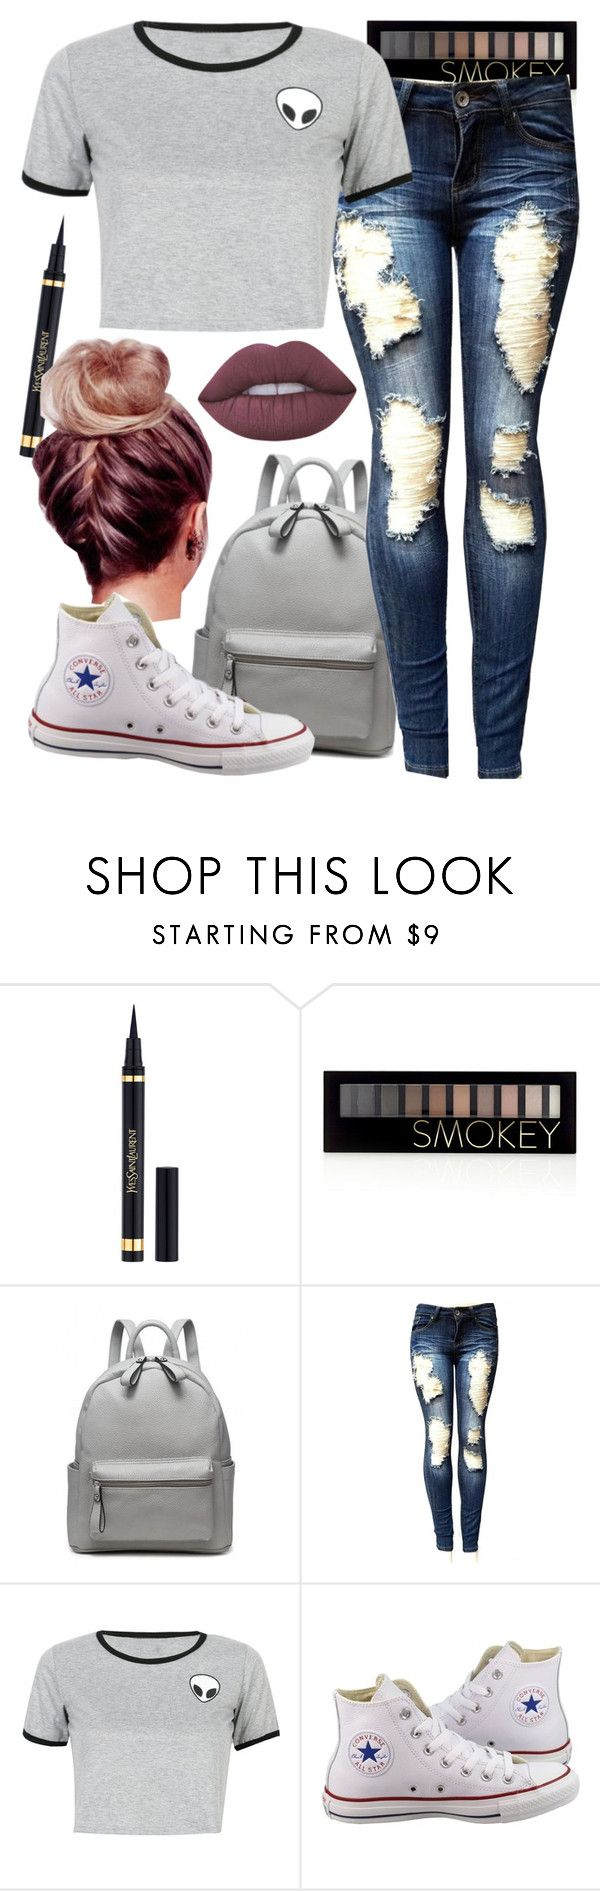 """""""Untitled #660"""" by harrypottergirl41229 ❤ liked on Polyvore featuring Yves Saint Laurent, Forever 21, WithChic, Converse and Lime Crime"""